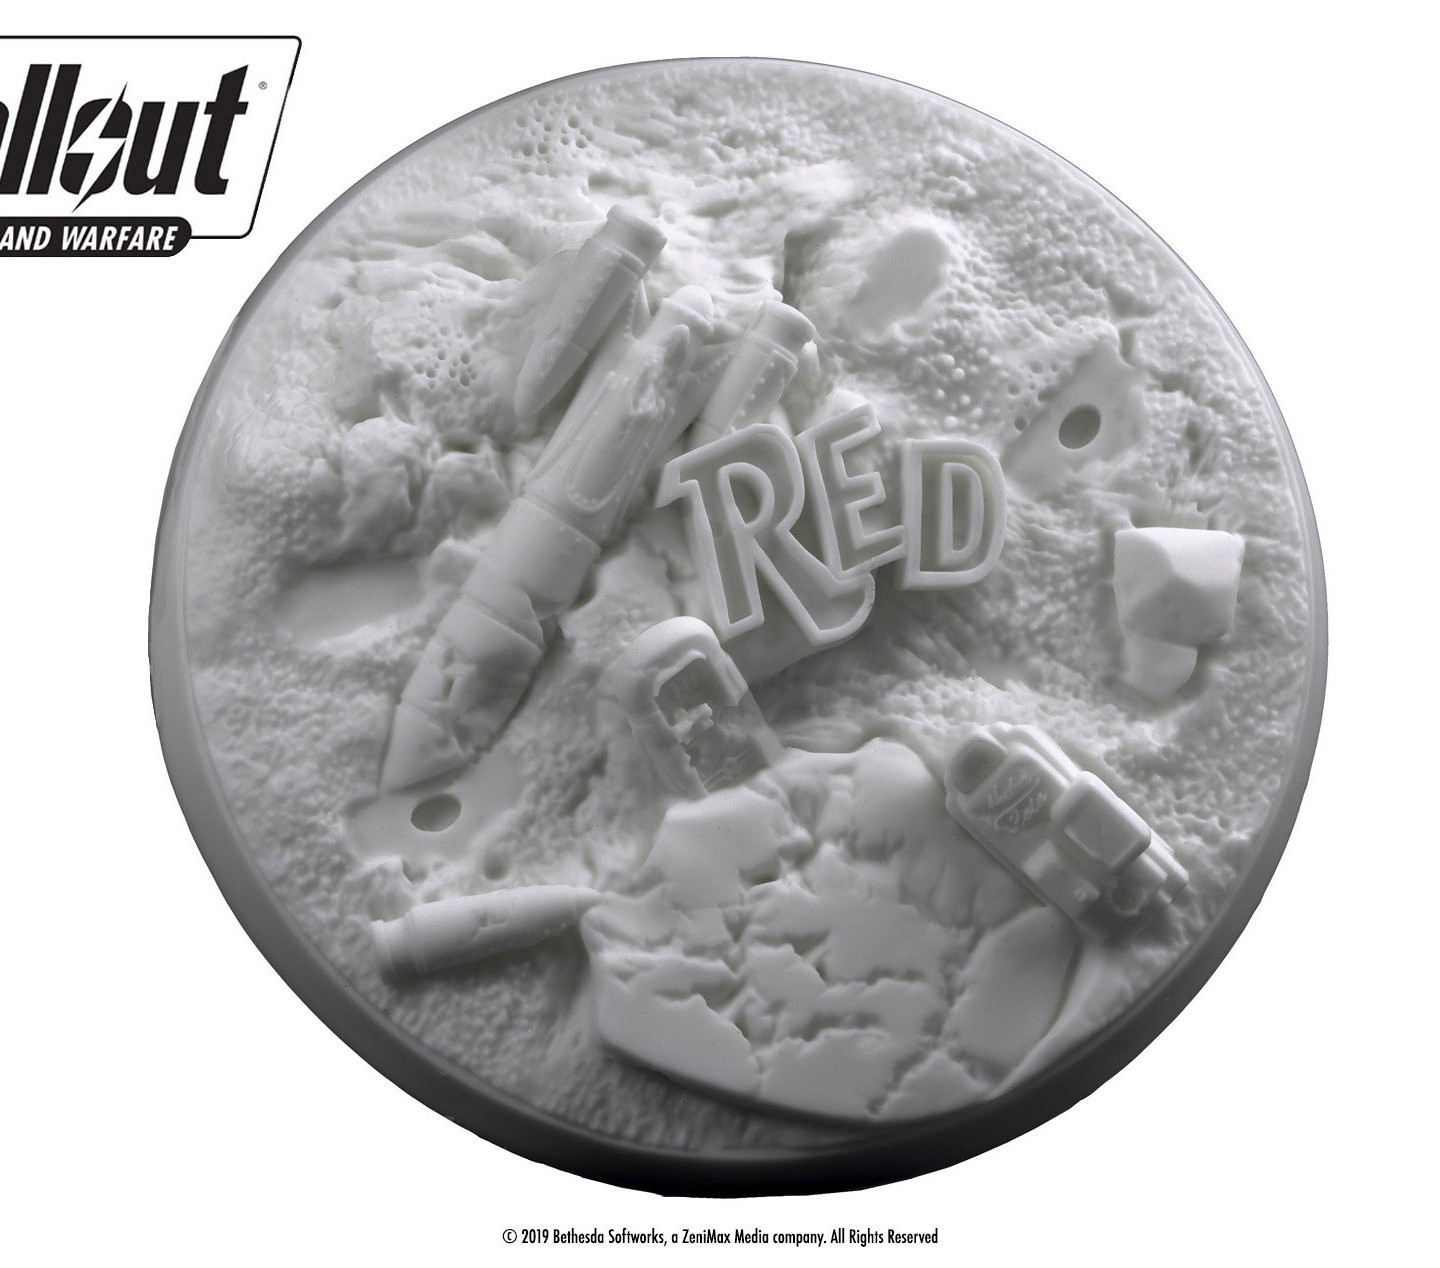 A circular base for tabletop miniatures from Fallout showing a dilapidated Red Rocket gas station parts